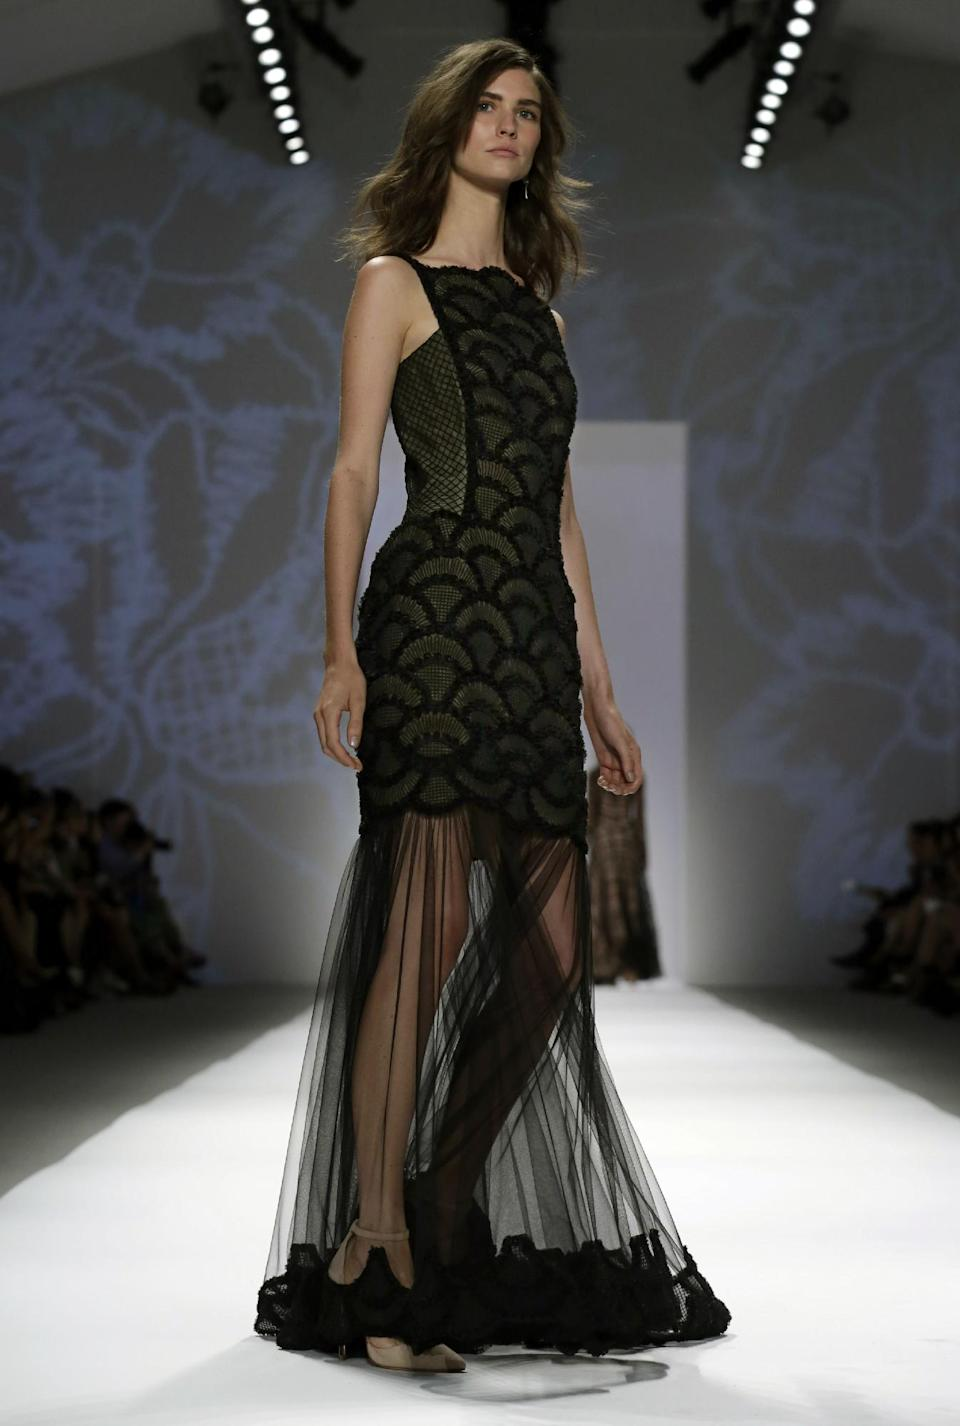 The Tadashi Shoji Spring 2014 collection is modeled during Fashion Week in New York, Thursday, Sept. 5, 2013. (AP Photo/Richard Drew)